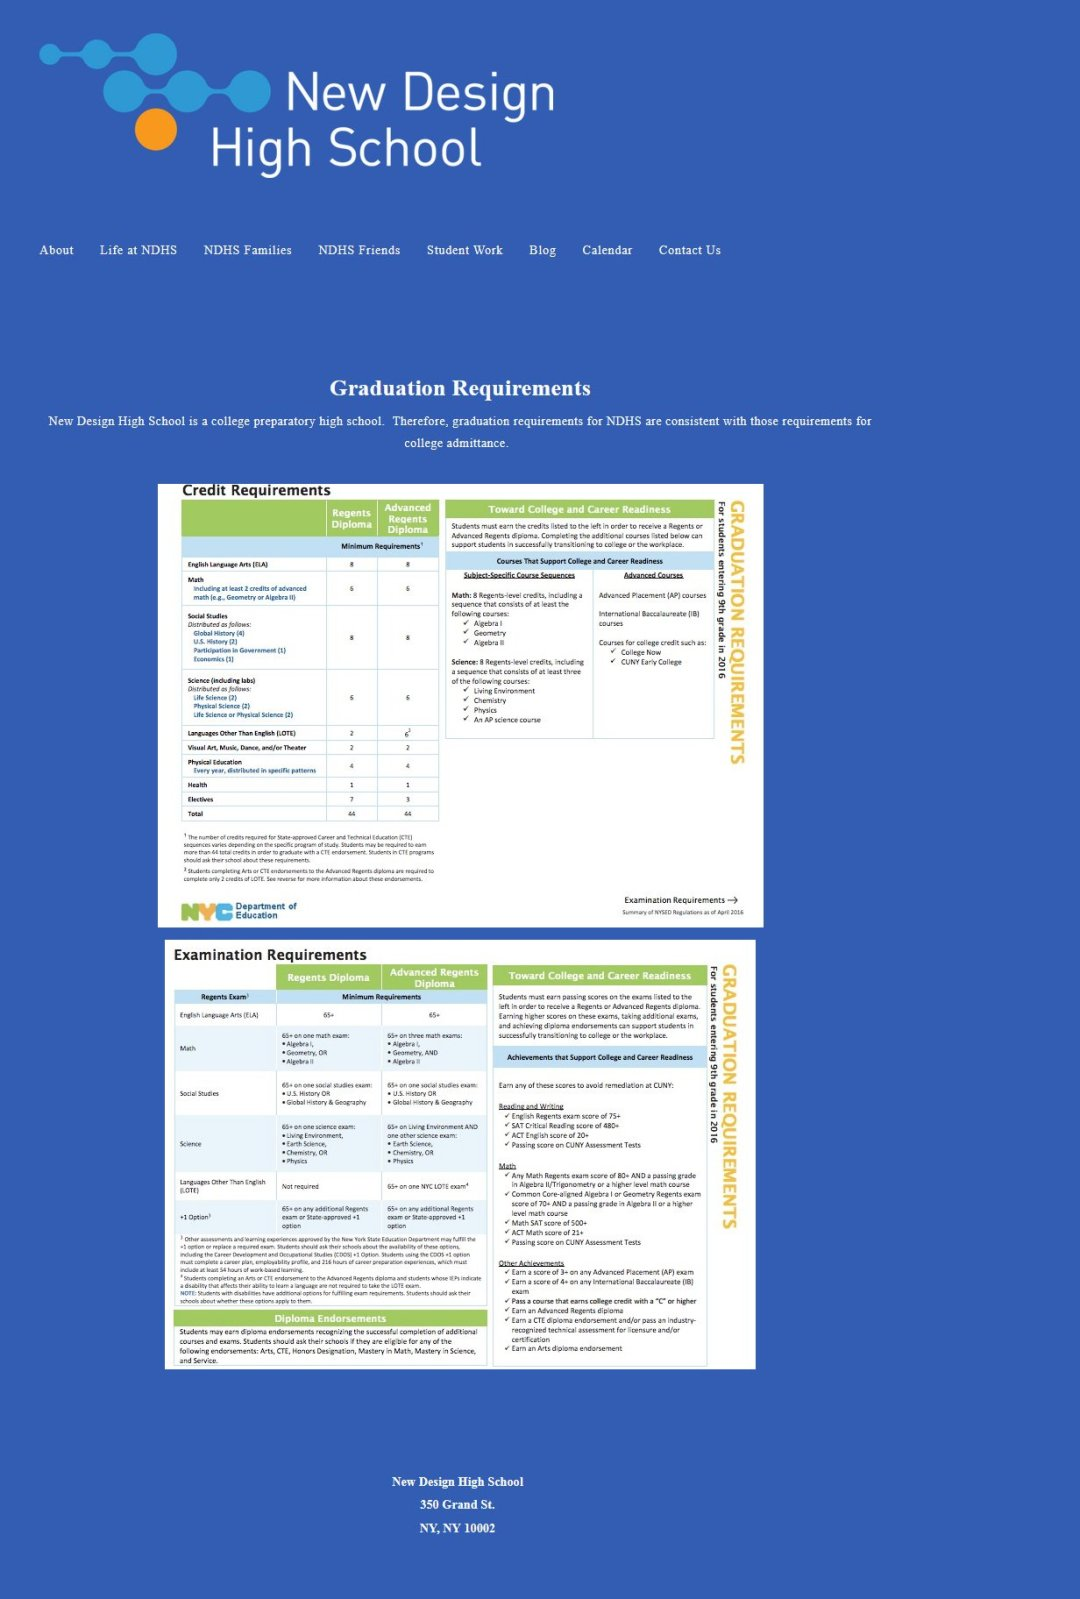 New Design High School, Graduation Requirements page before